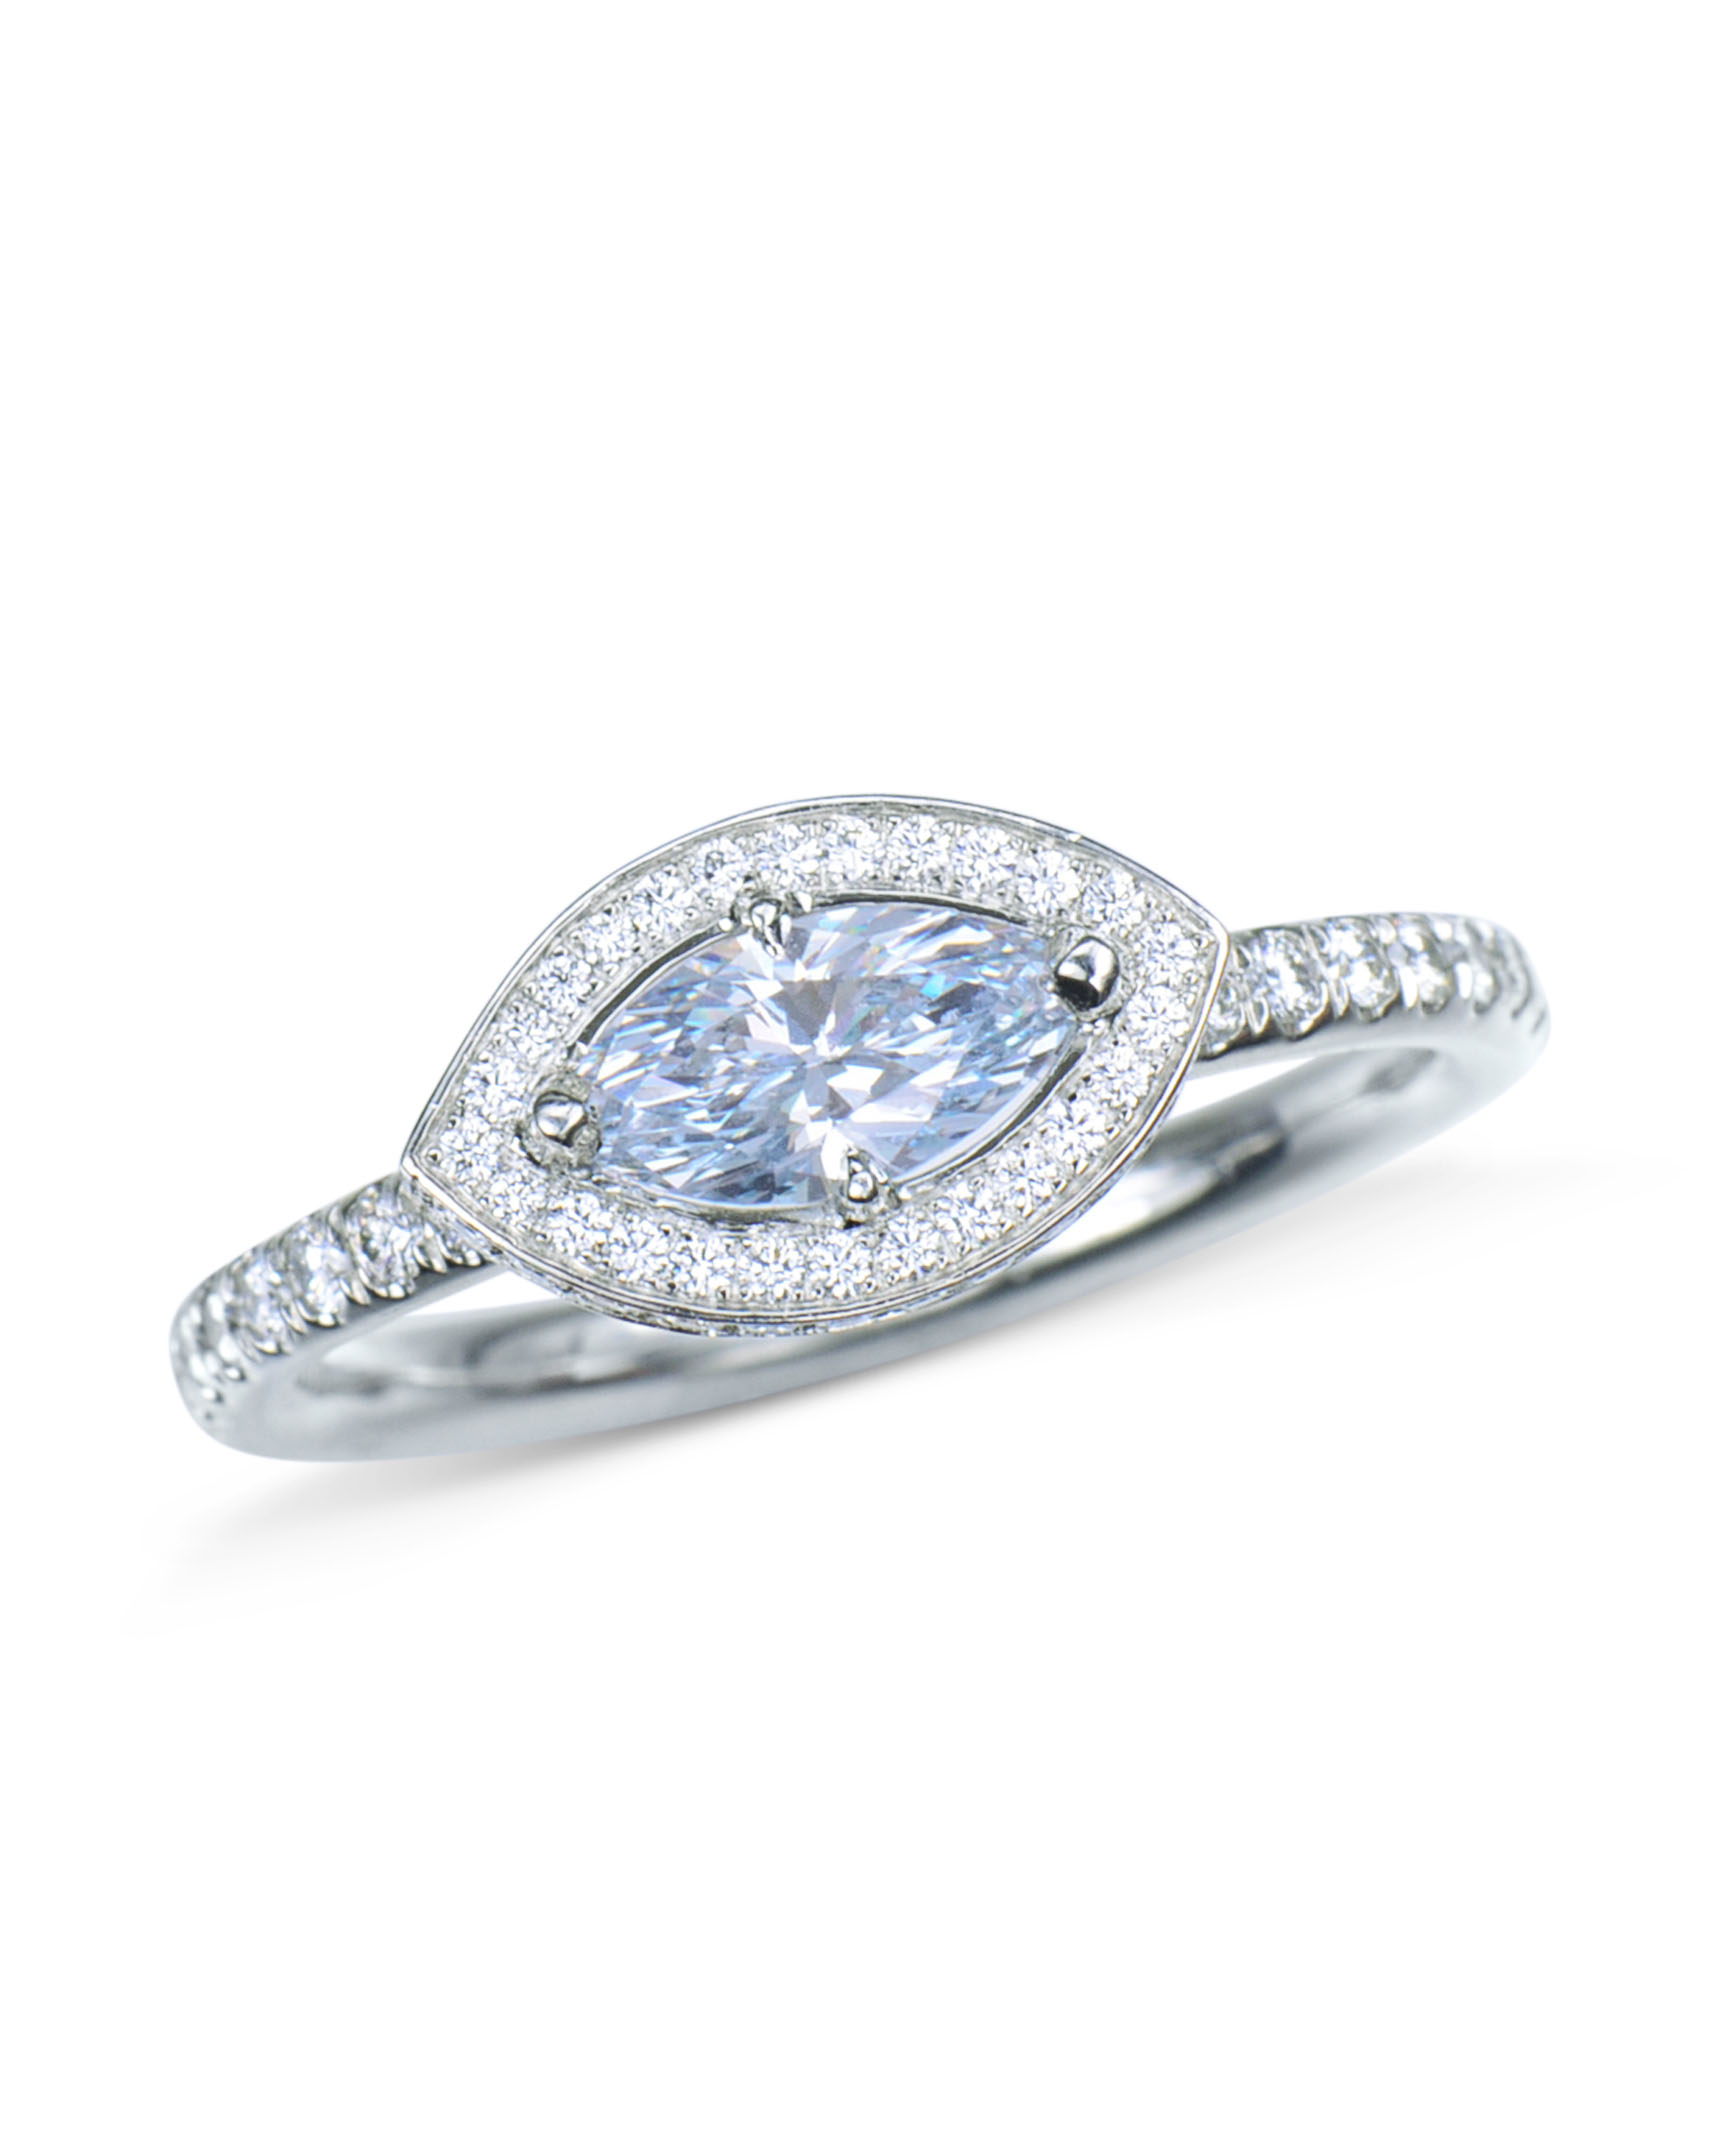 d2527d0c48cd6 Natural Fancy Blue Marquise Diamond Ring